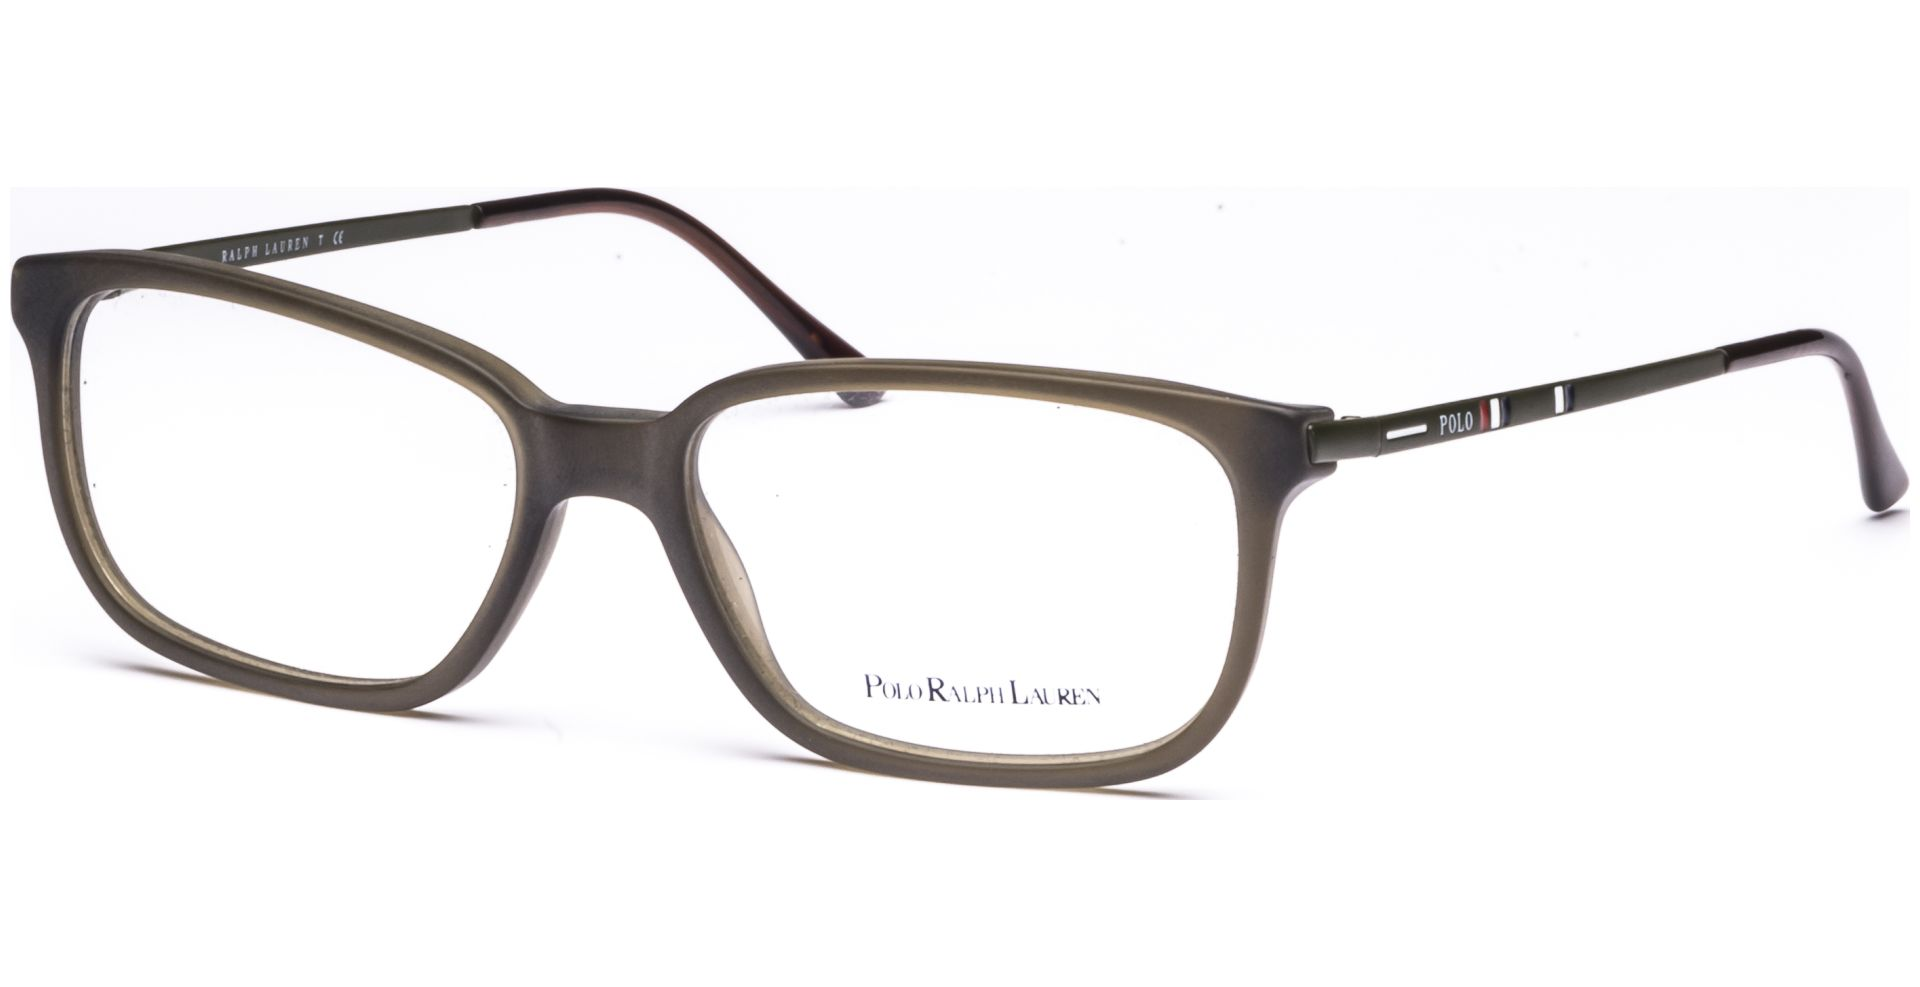 Polo - Ralph Lauren - PH2087 5232 5416 Matte Olive/Green Transparent ...